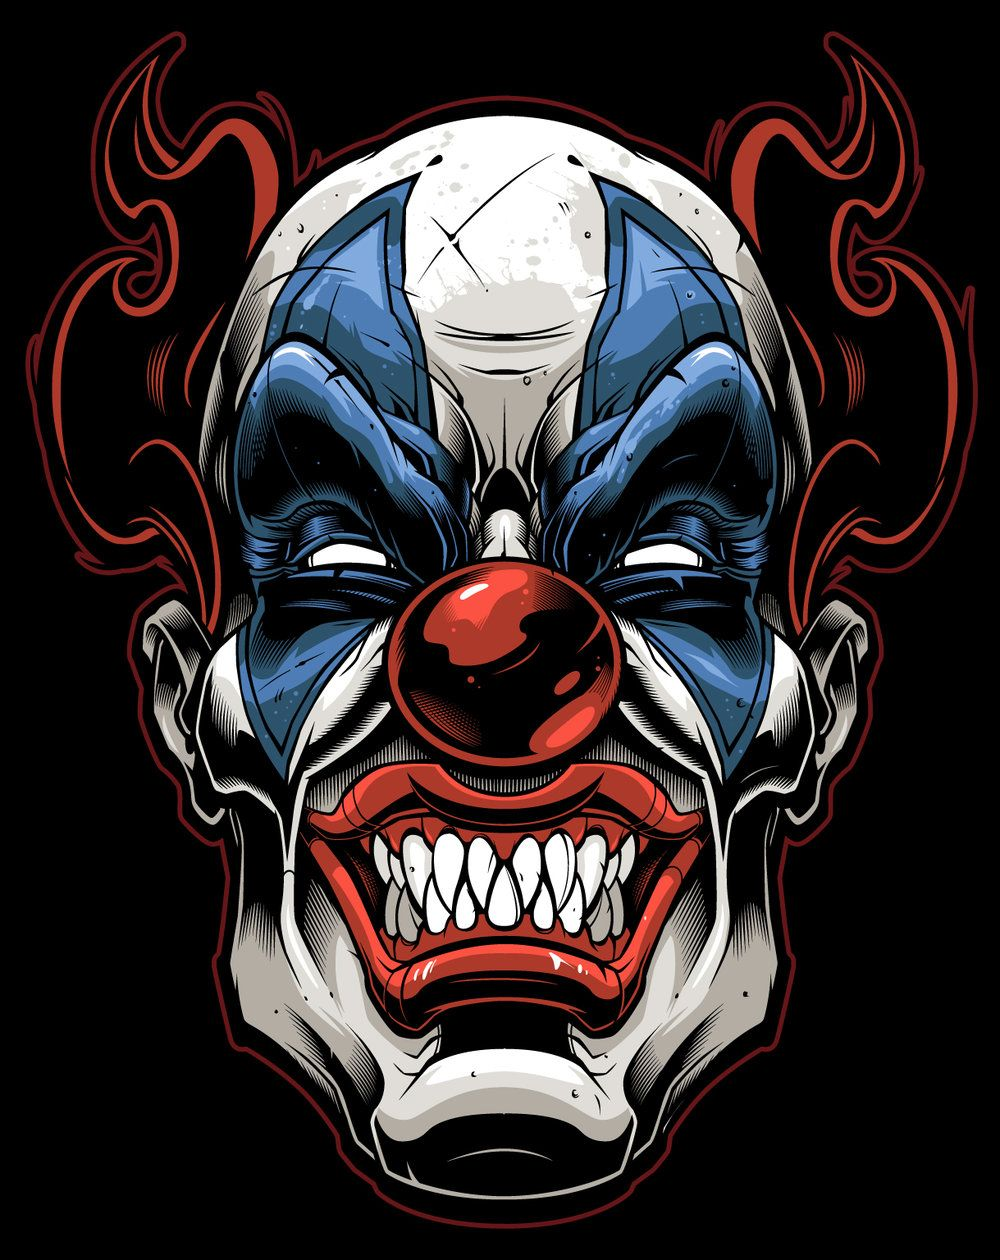 Evil clowns scary clowns clown faces clown tattoo artist supplies t